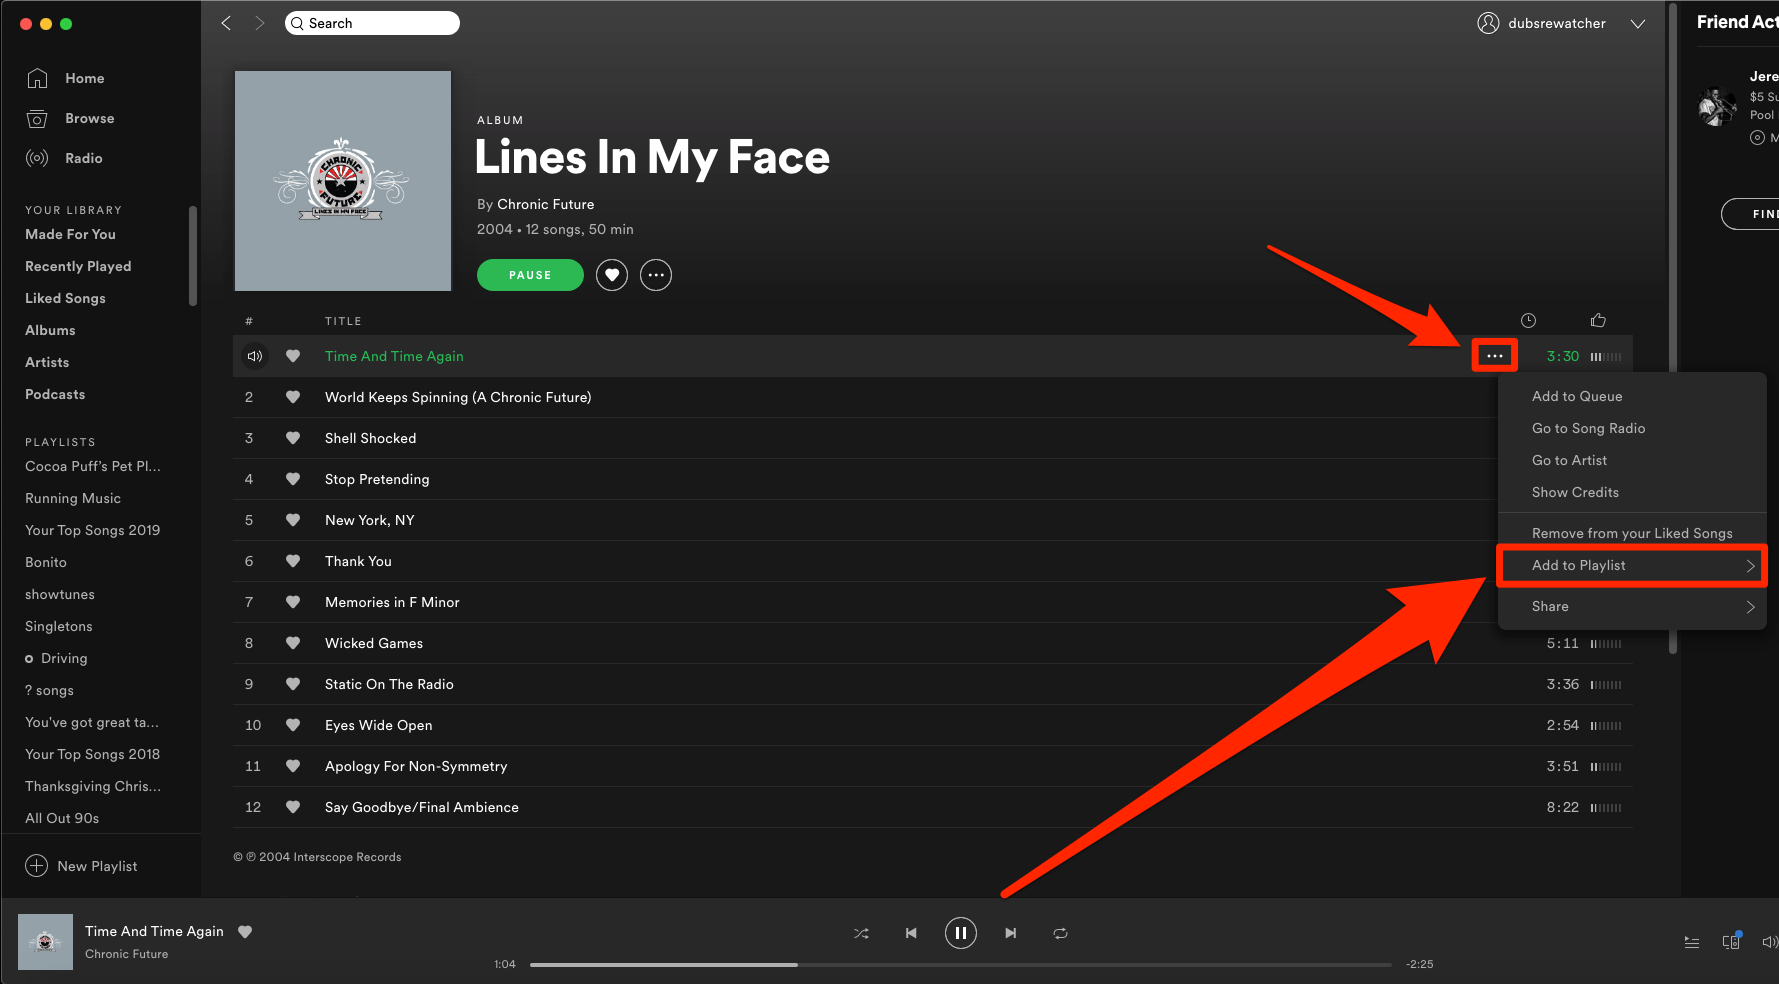 Best way to find new music on spotify